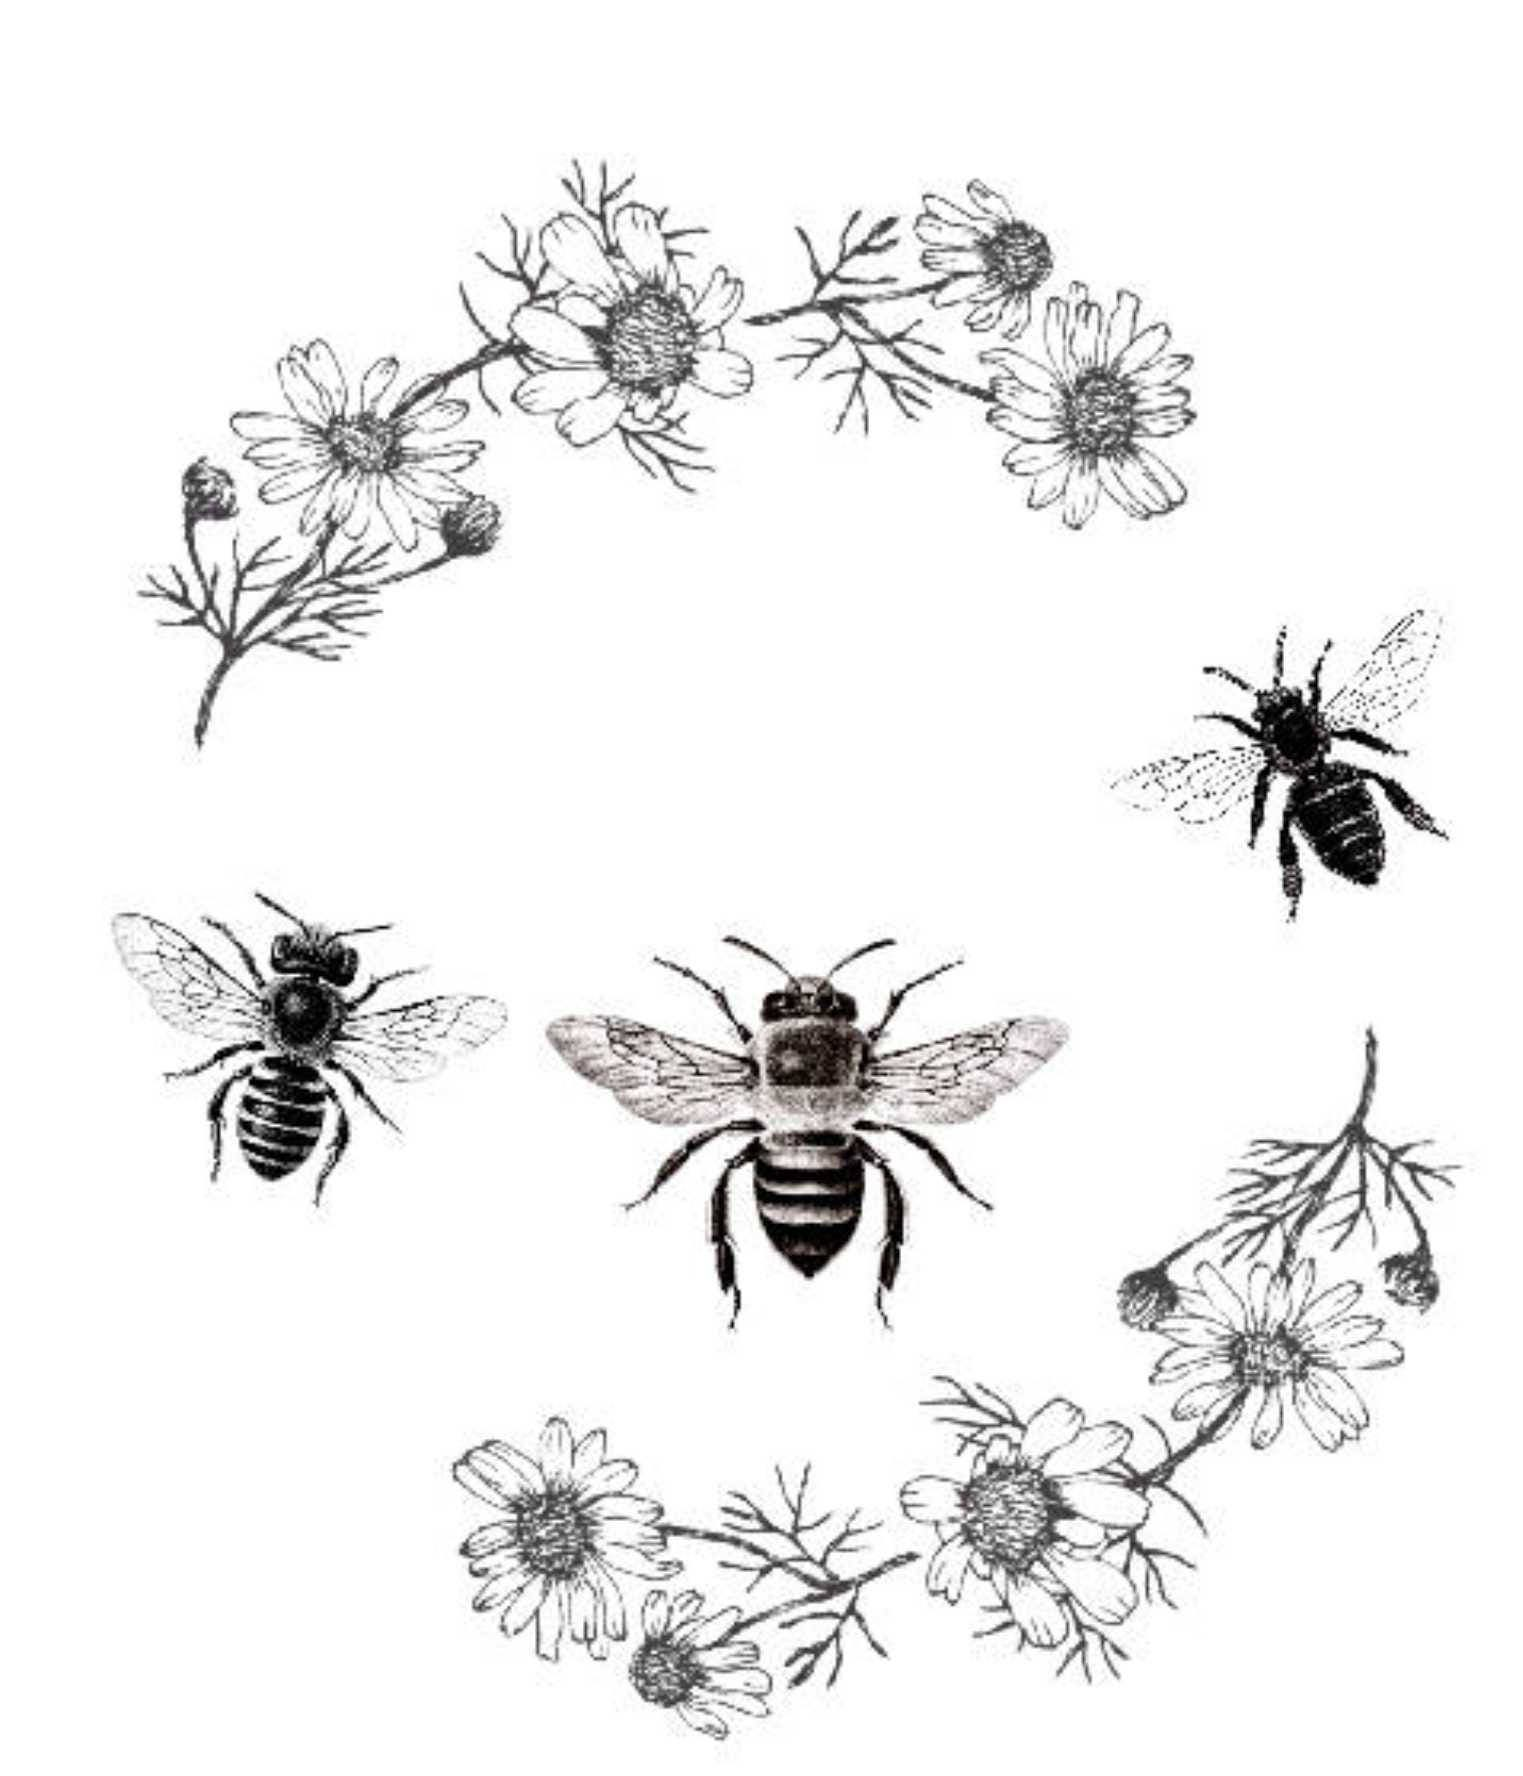 Bee Print Bee Clipart Vintage Bee Poster Vintage Daisy Flowers Etsy